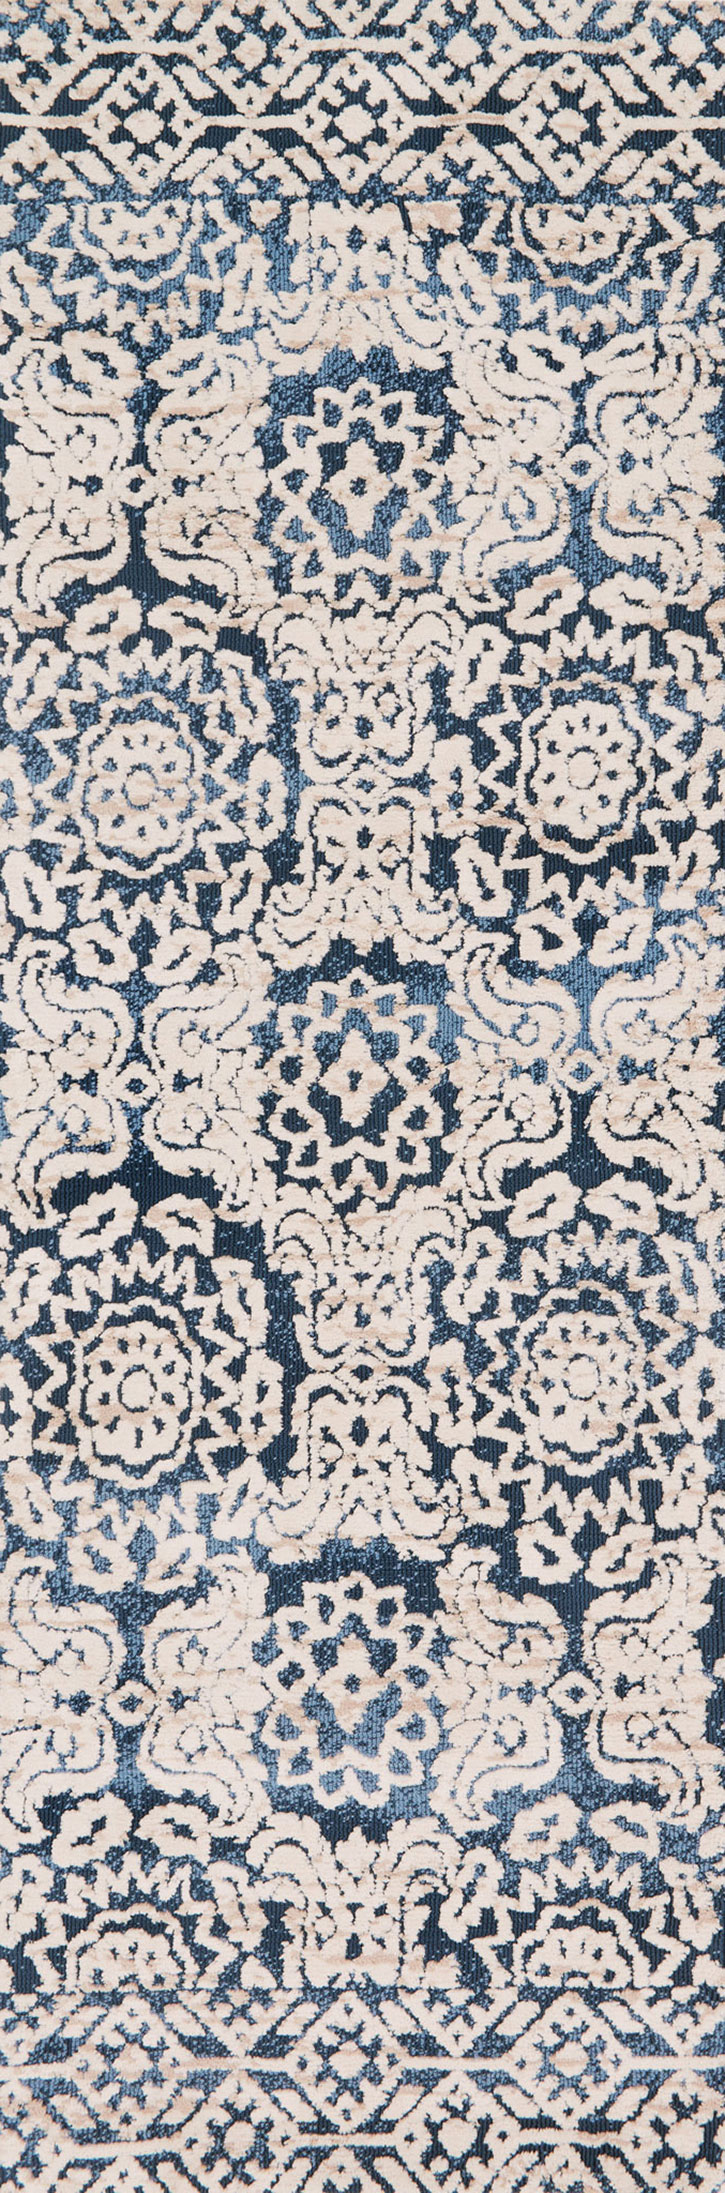 Lotus Lb 06 Blue Ant Ivory Area Rug Magnolia Home By